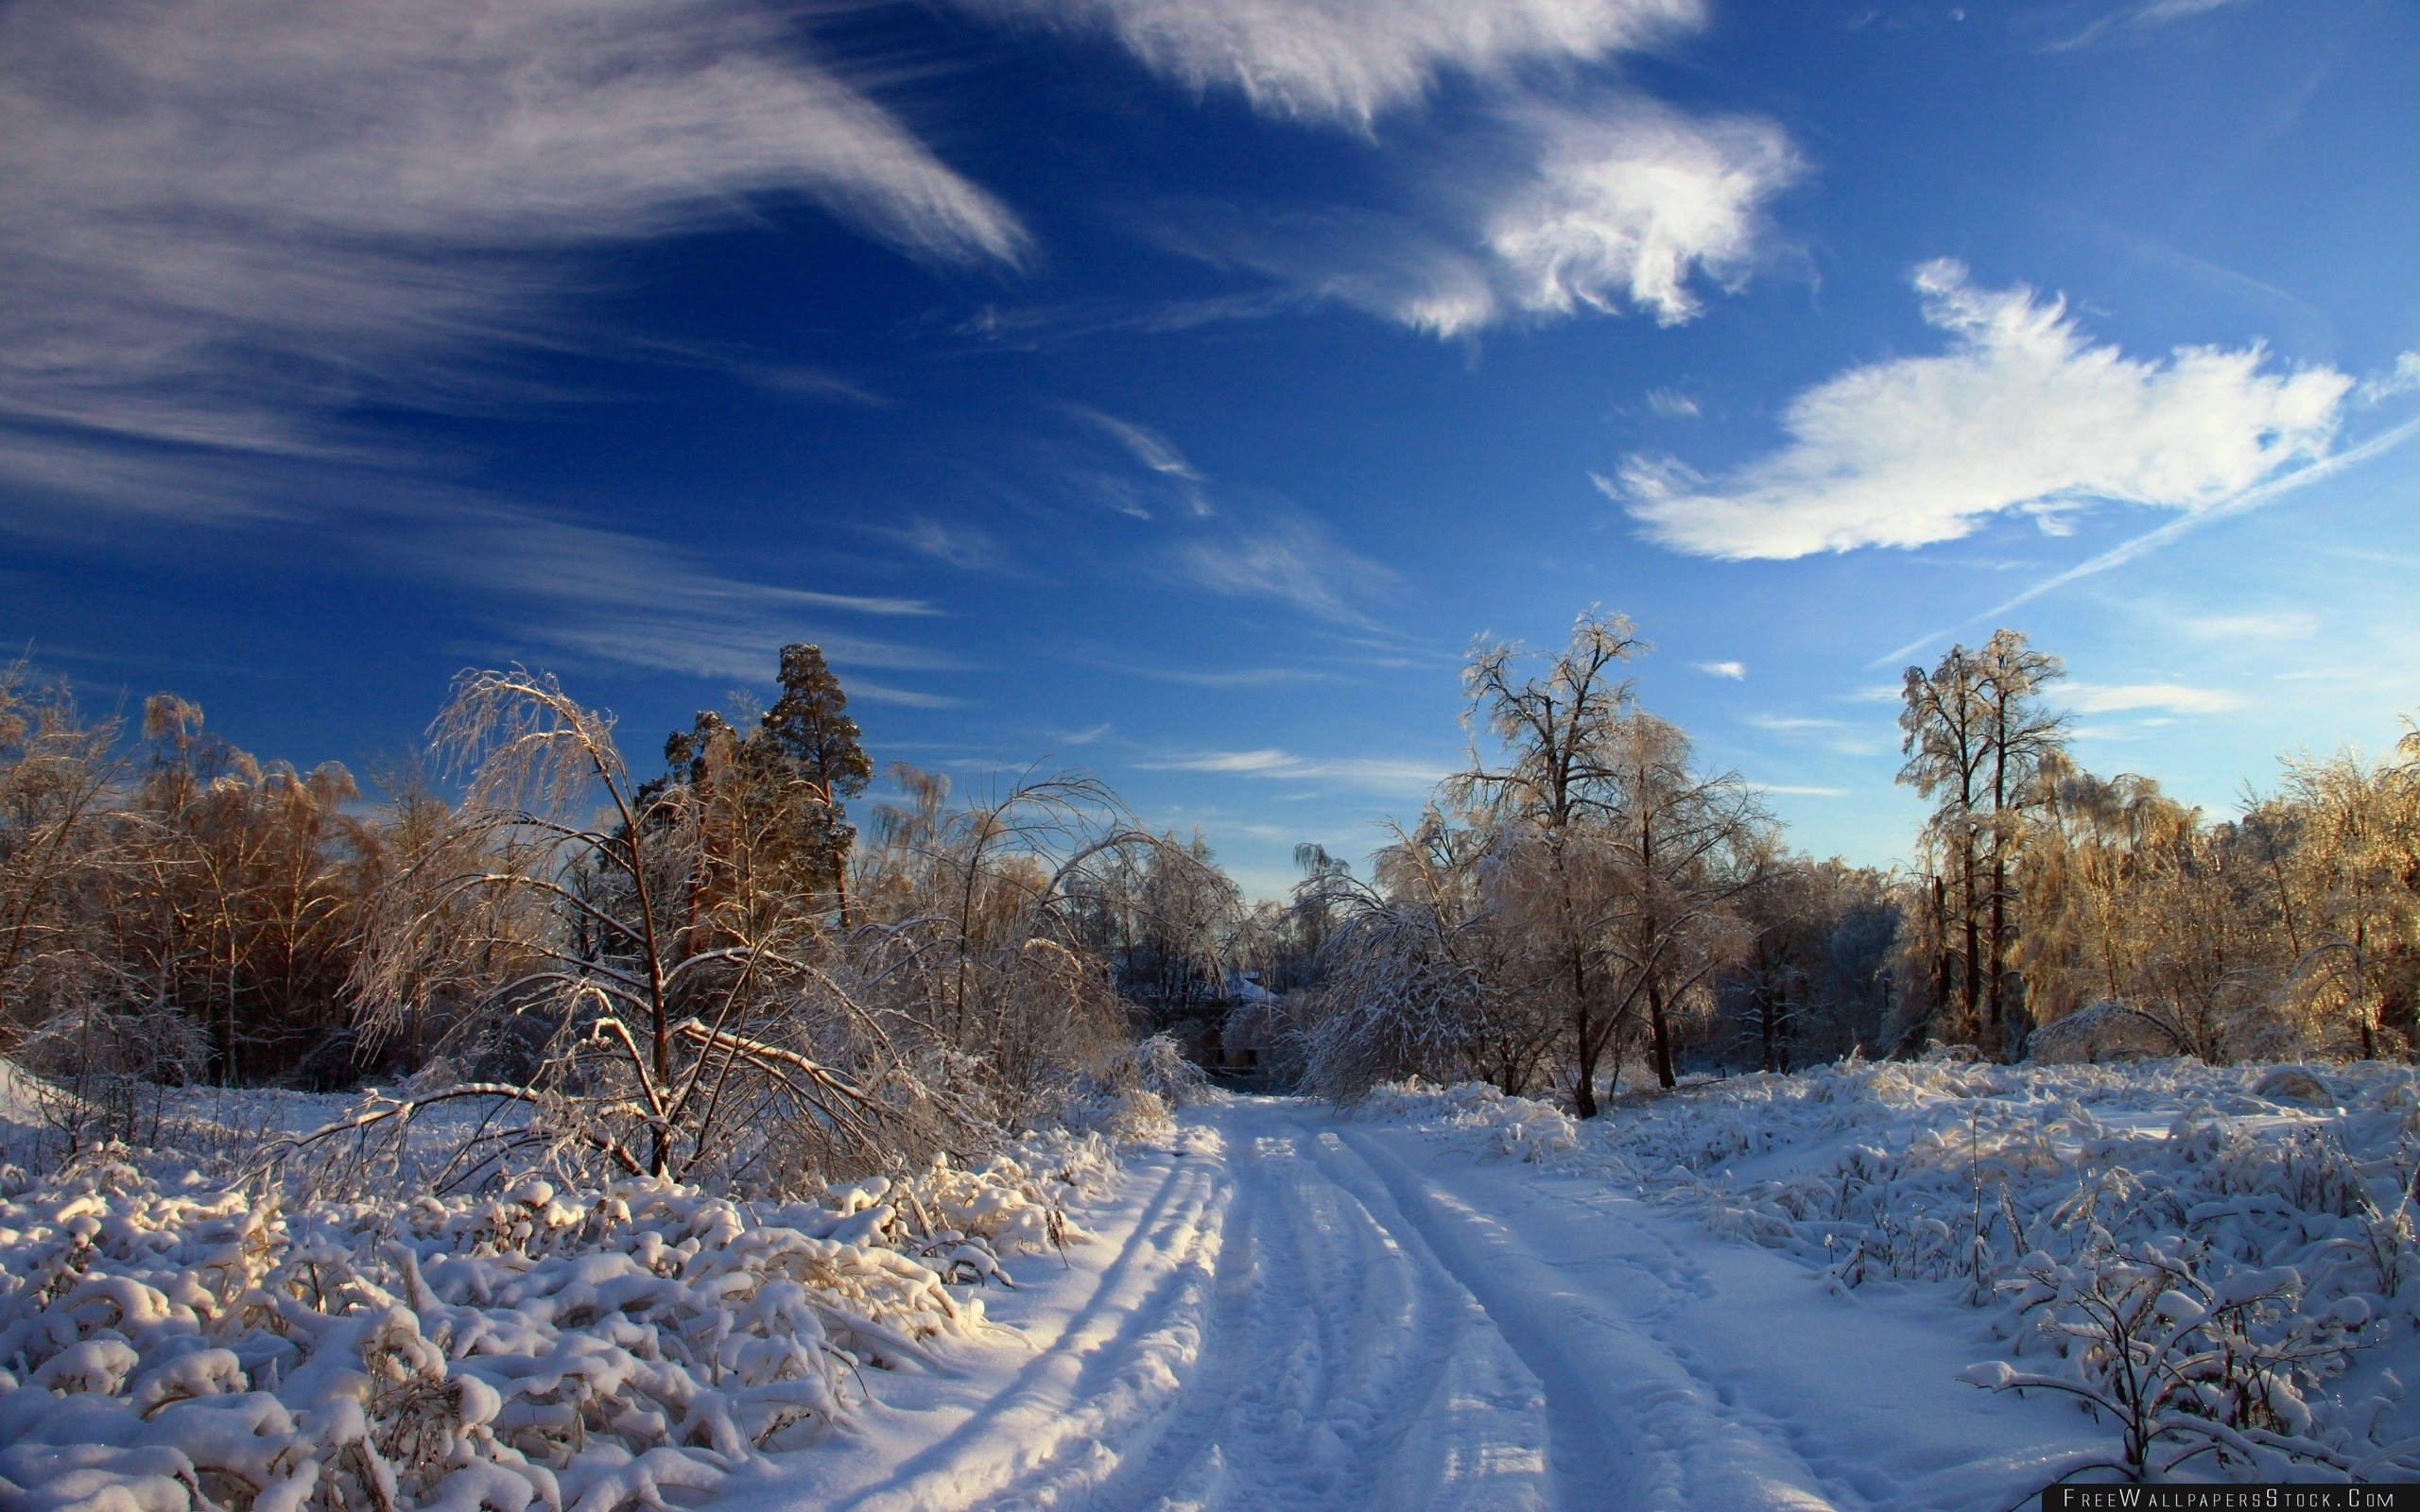 Download Free Wallpaper Winter Snow Road Traces Bushes Trees Snowdrifts Clouds Sky Clear